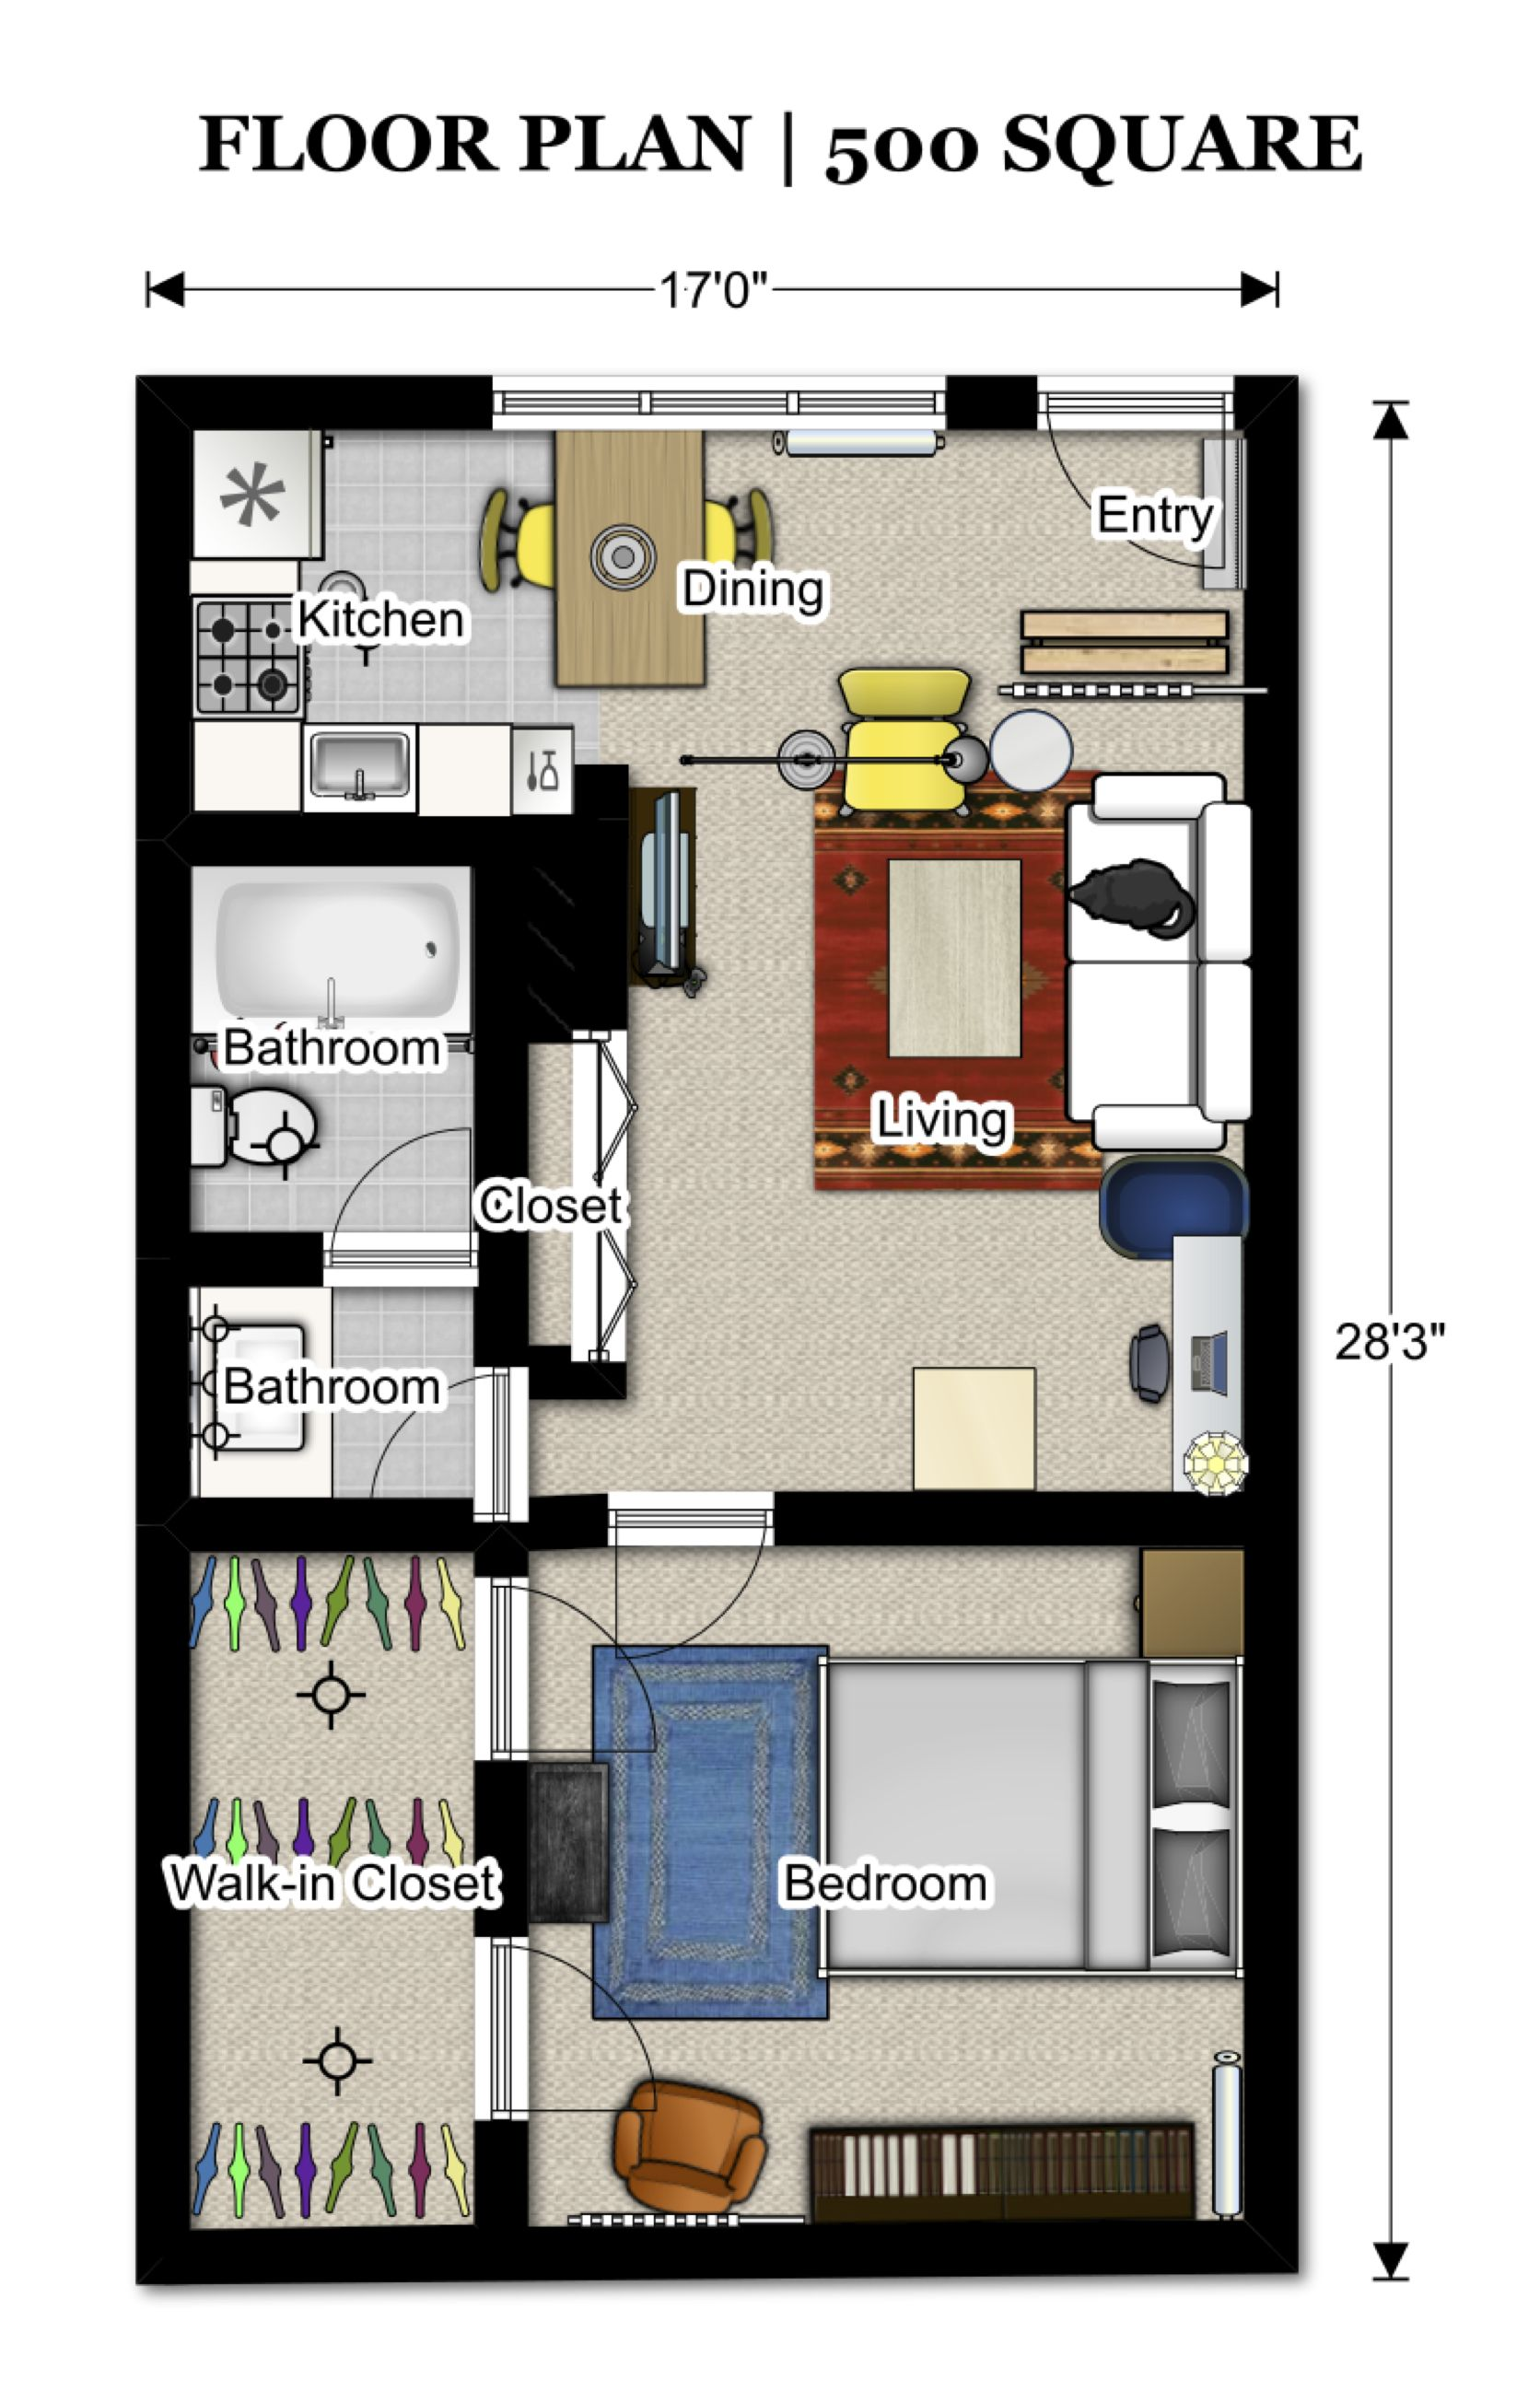 Floor plans 500 sq ft 352 3 pinterest apartment for House plan in 500 sq ft